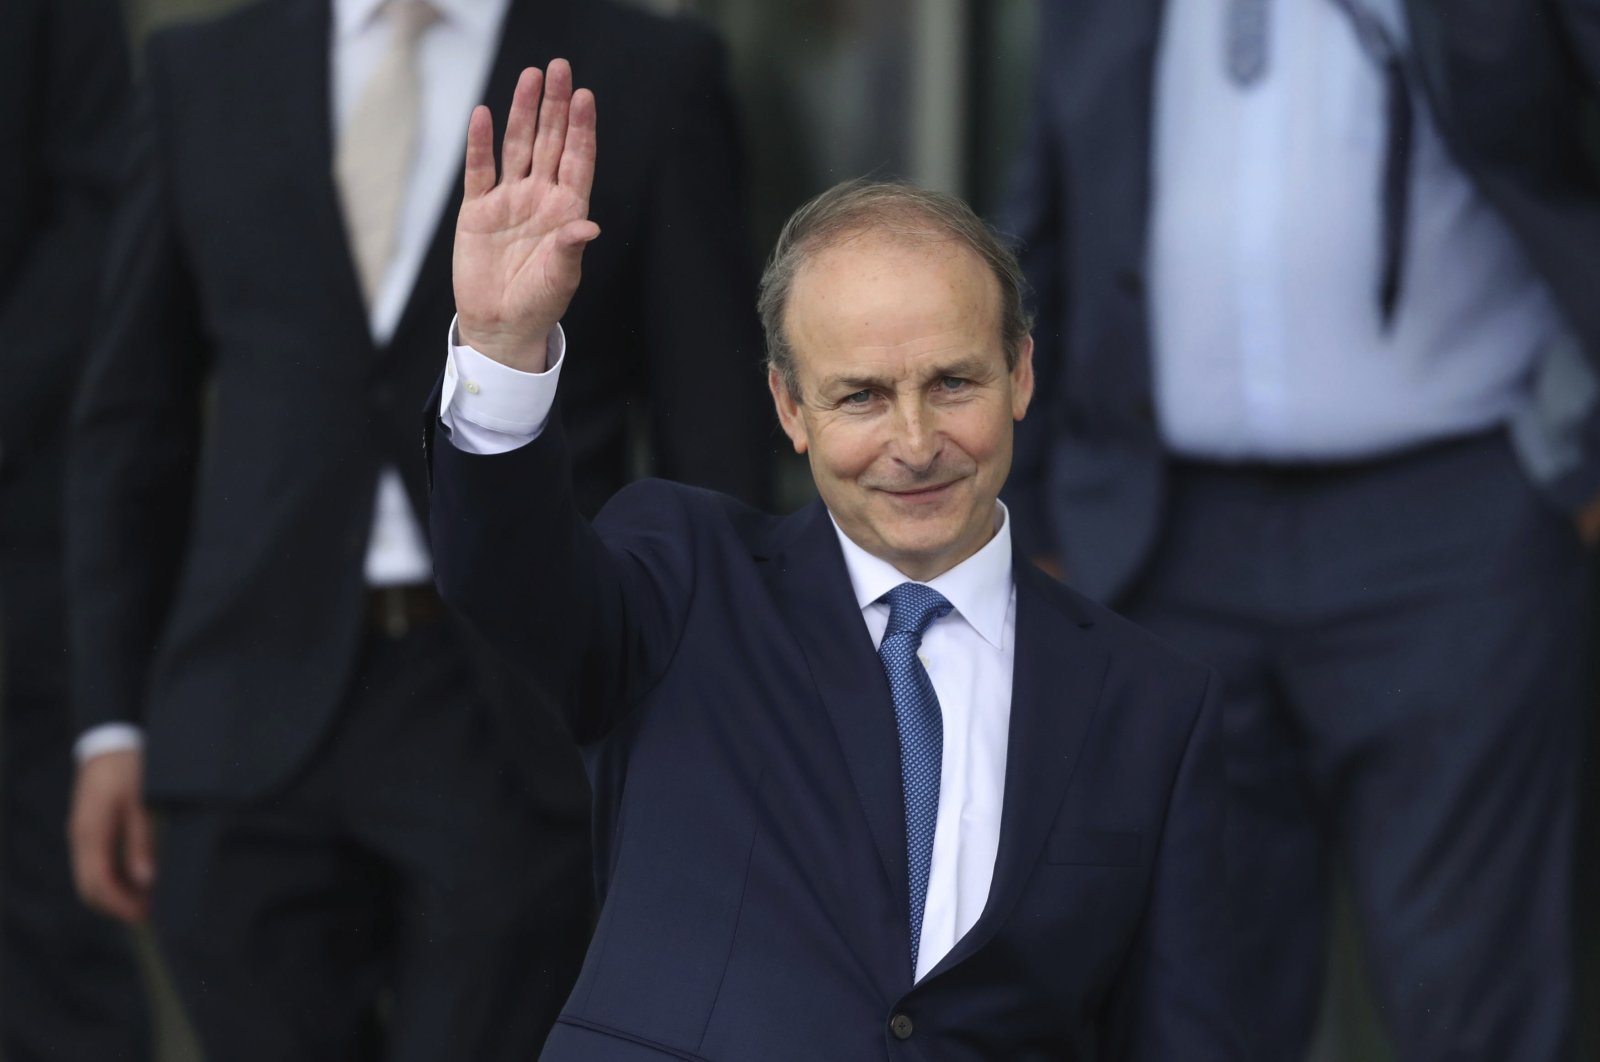 Fianna Fail party leader Micheal Martin leaves the Dail government in Dublin, where he has been officially elected as the new Irish Premier, June 27, 2020. (AP Photo)